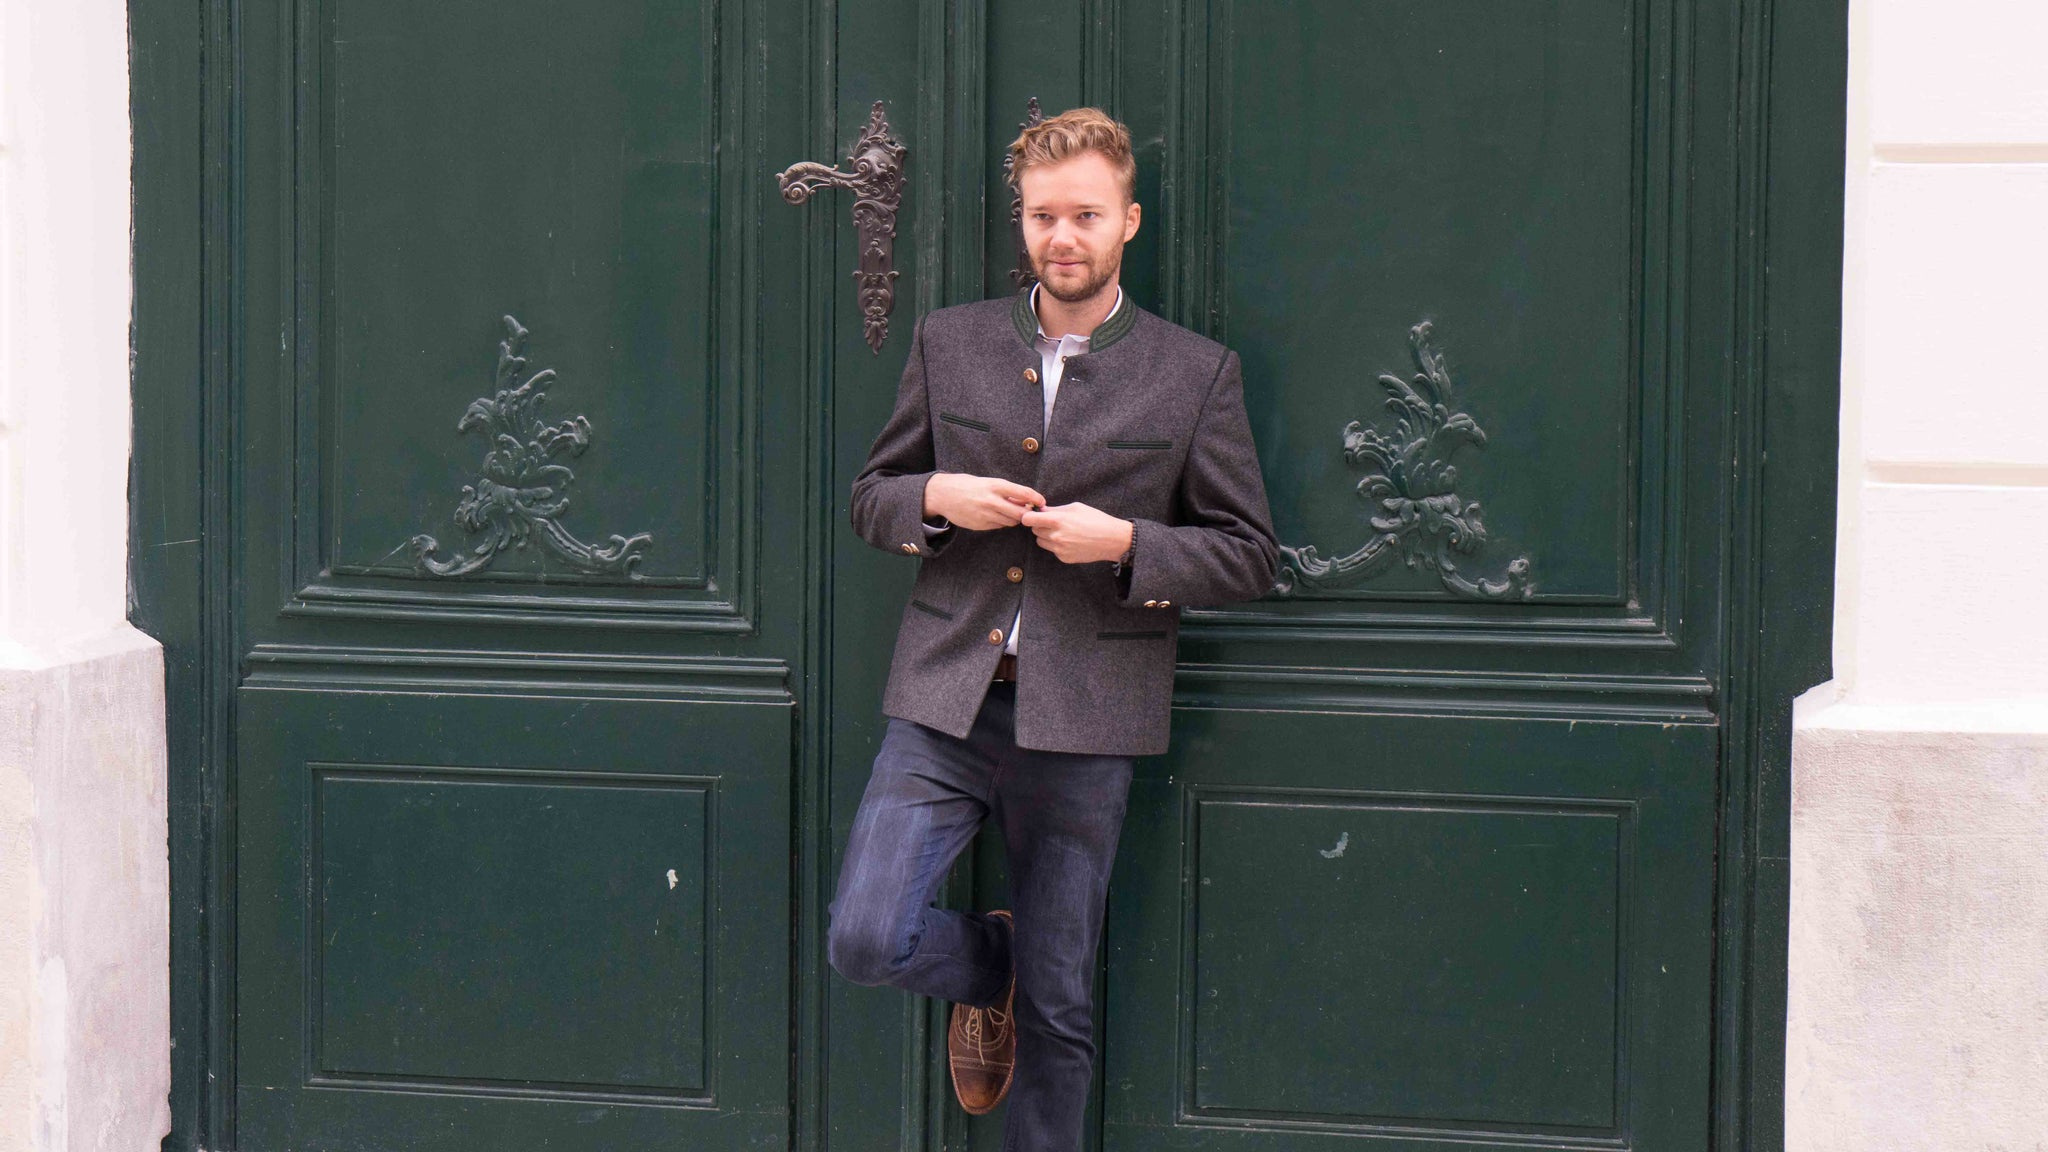 Photo Shoot for Robert W. Stolz in Downtown Vienna, Austria on October 8th featuring a loden jacket called the Edelmann